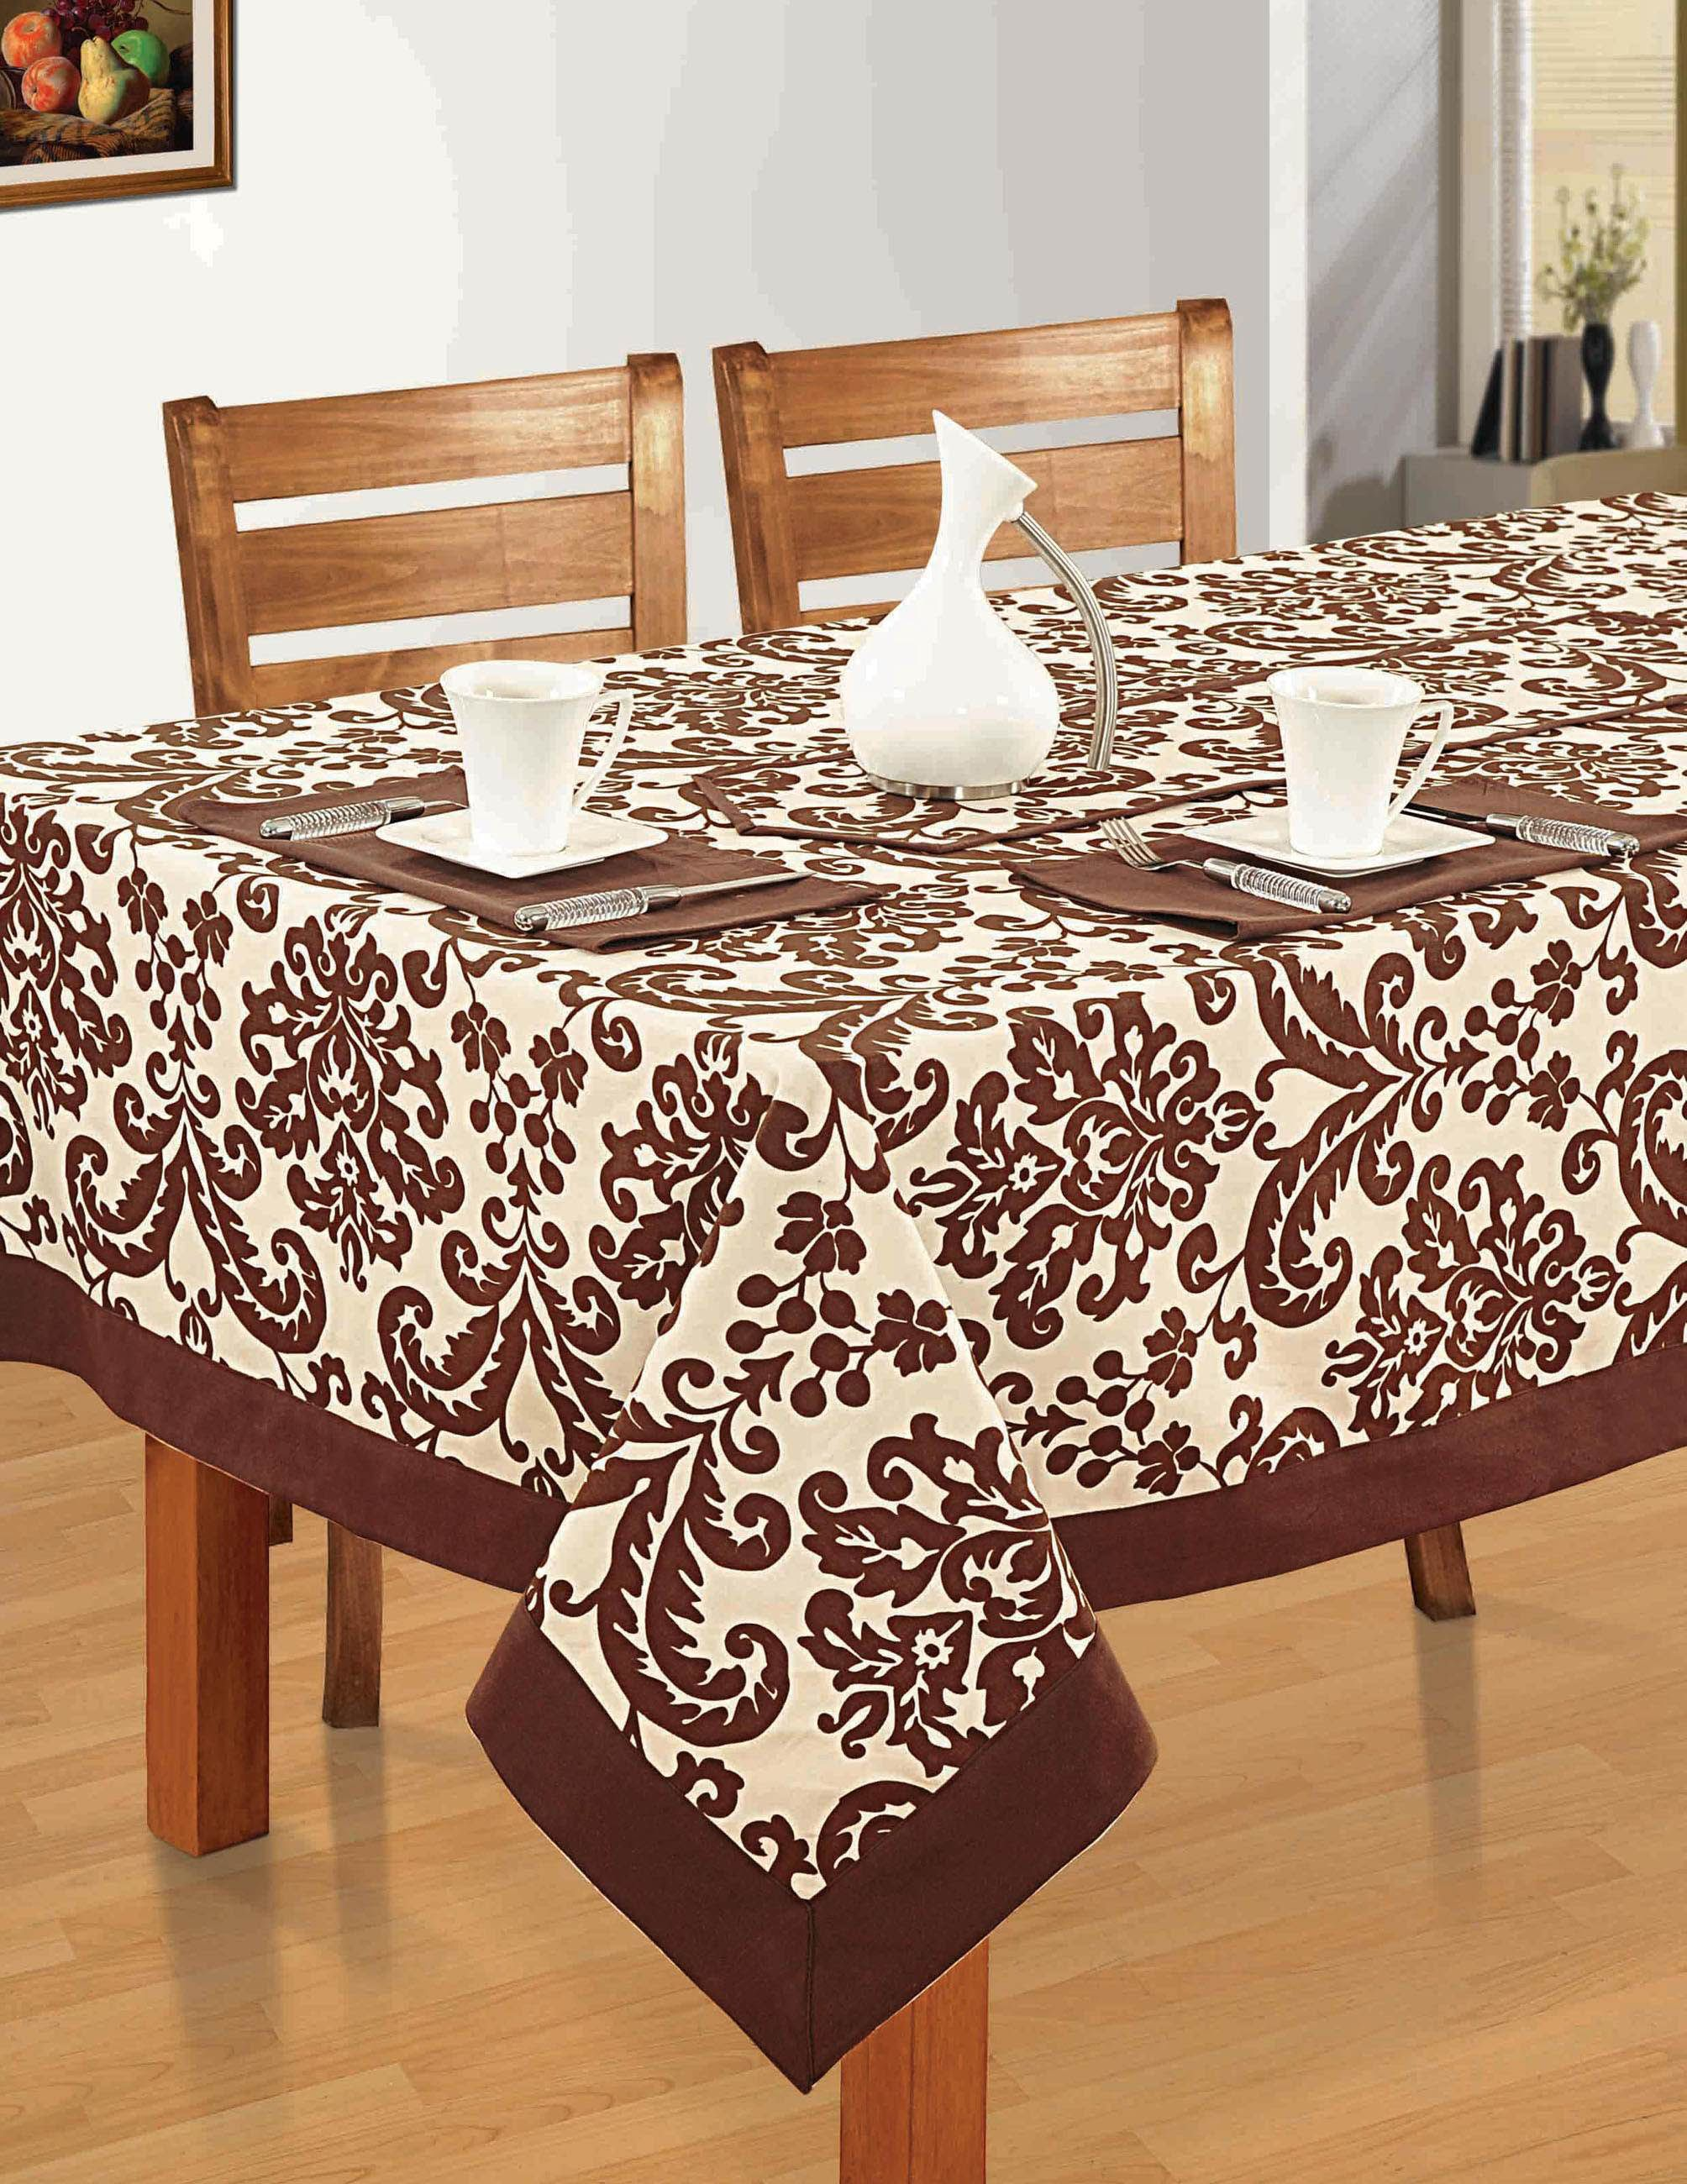 Colorful Rectangular Patterned Cotton Tablecloth 60x120 Inch Chocolate And Cream Damask Table Cloth Buy Table Table Covers